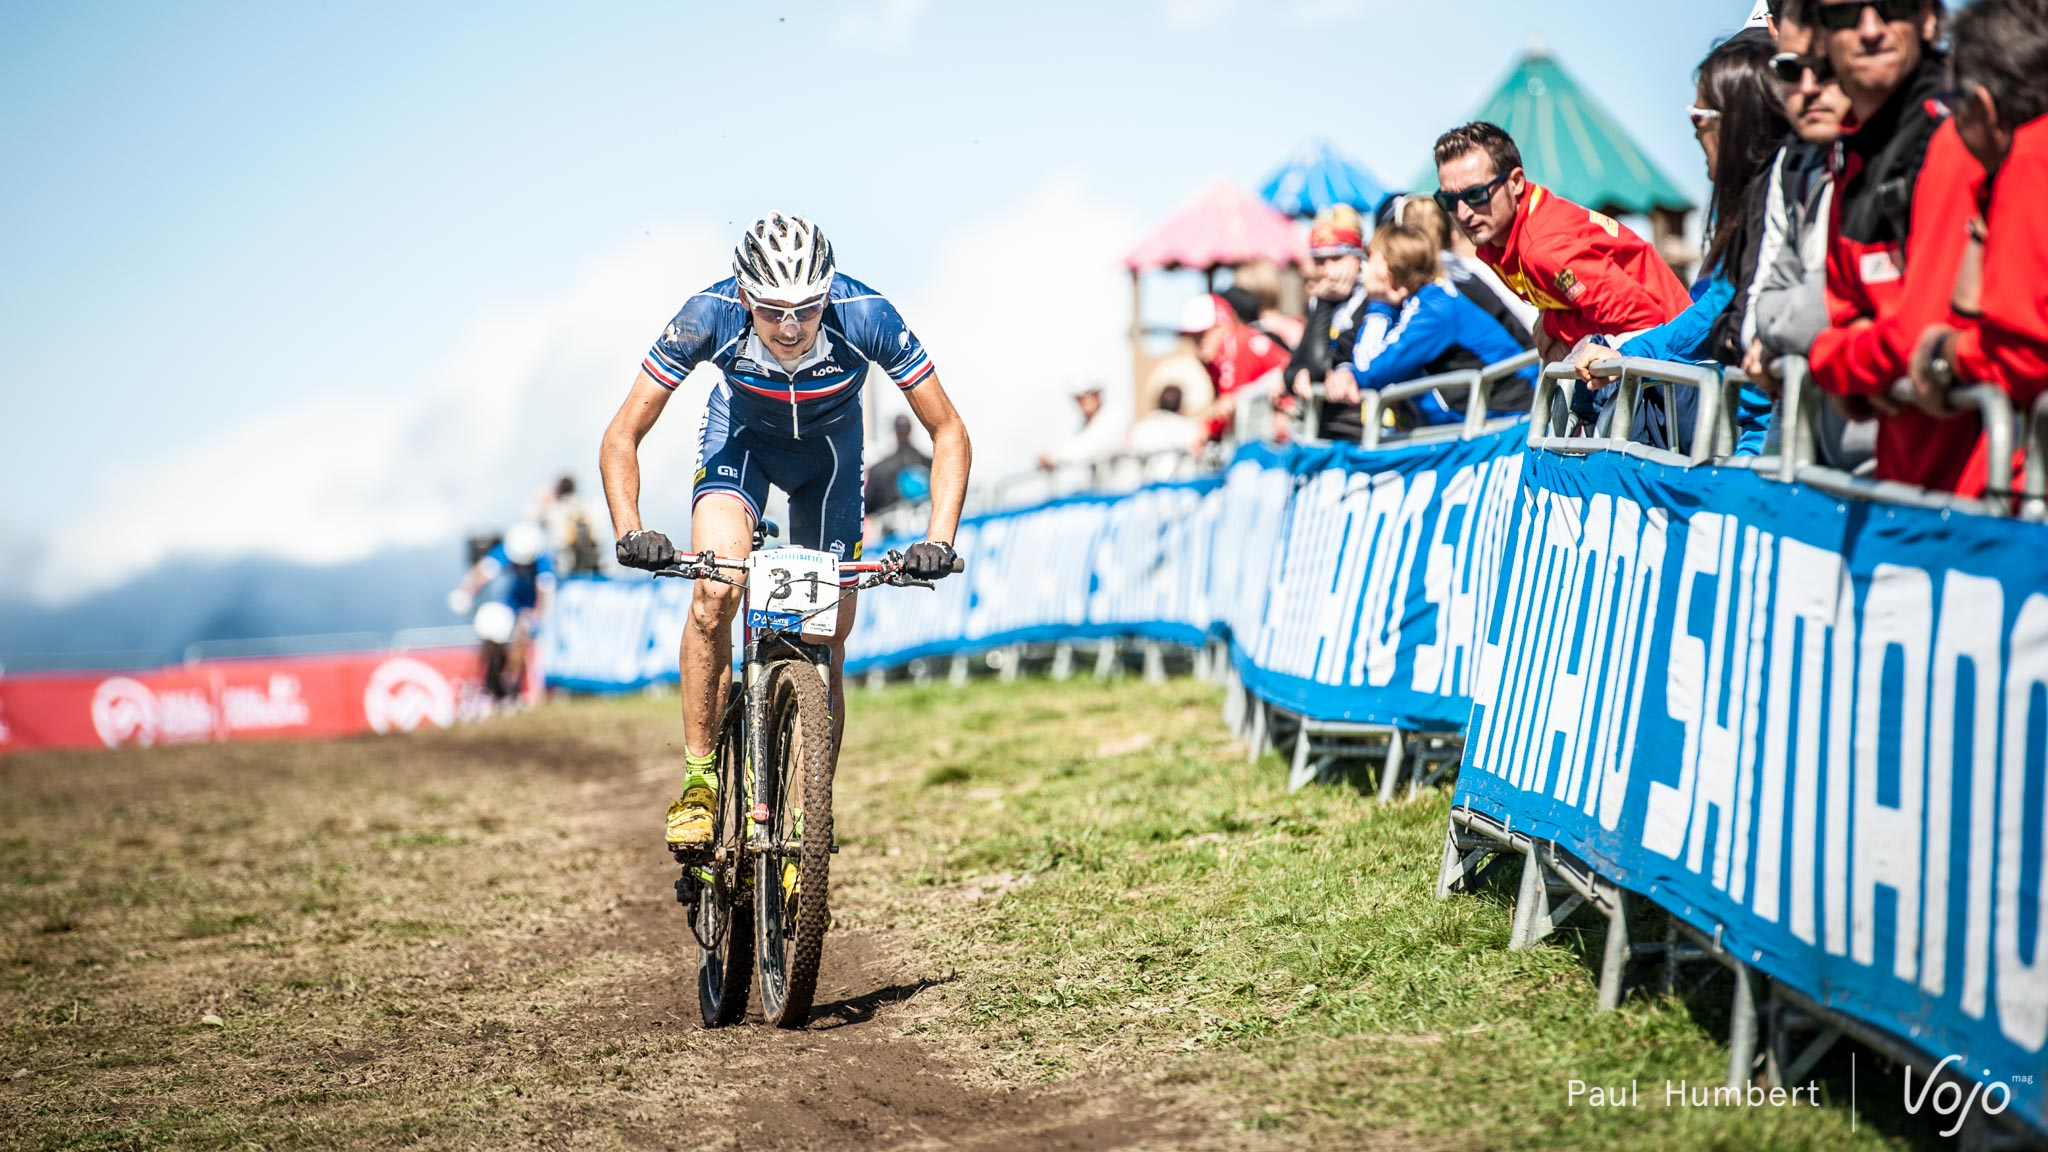 Worldchamps-2015-vojo-XCO-Dames-60